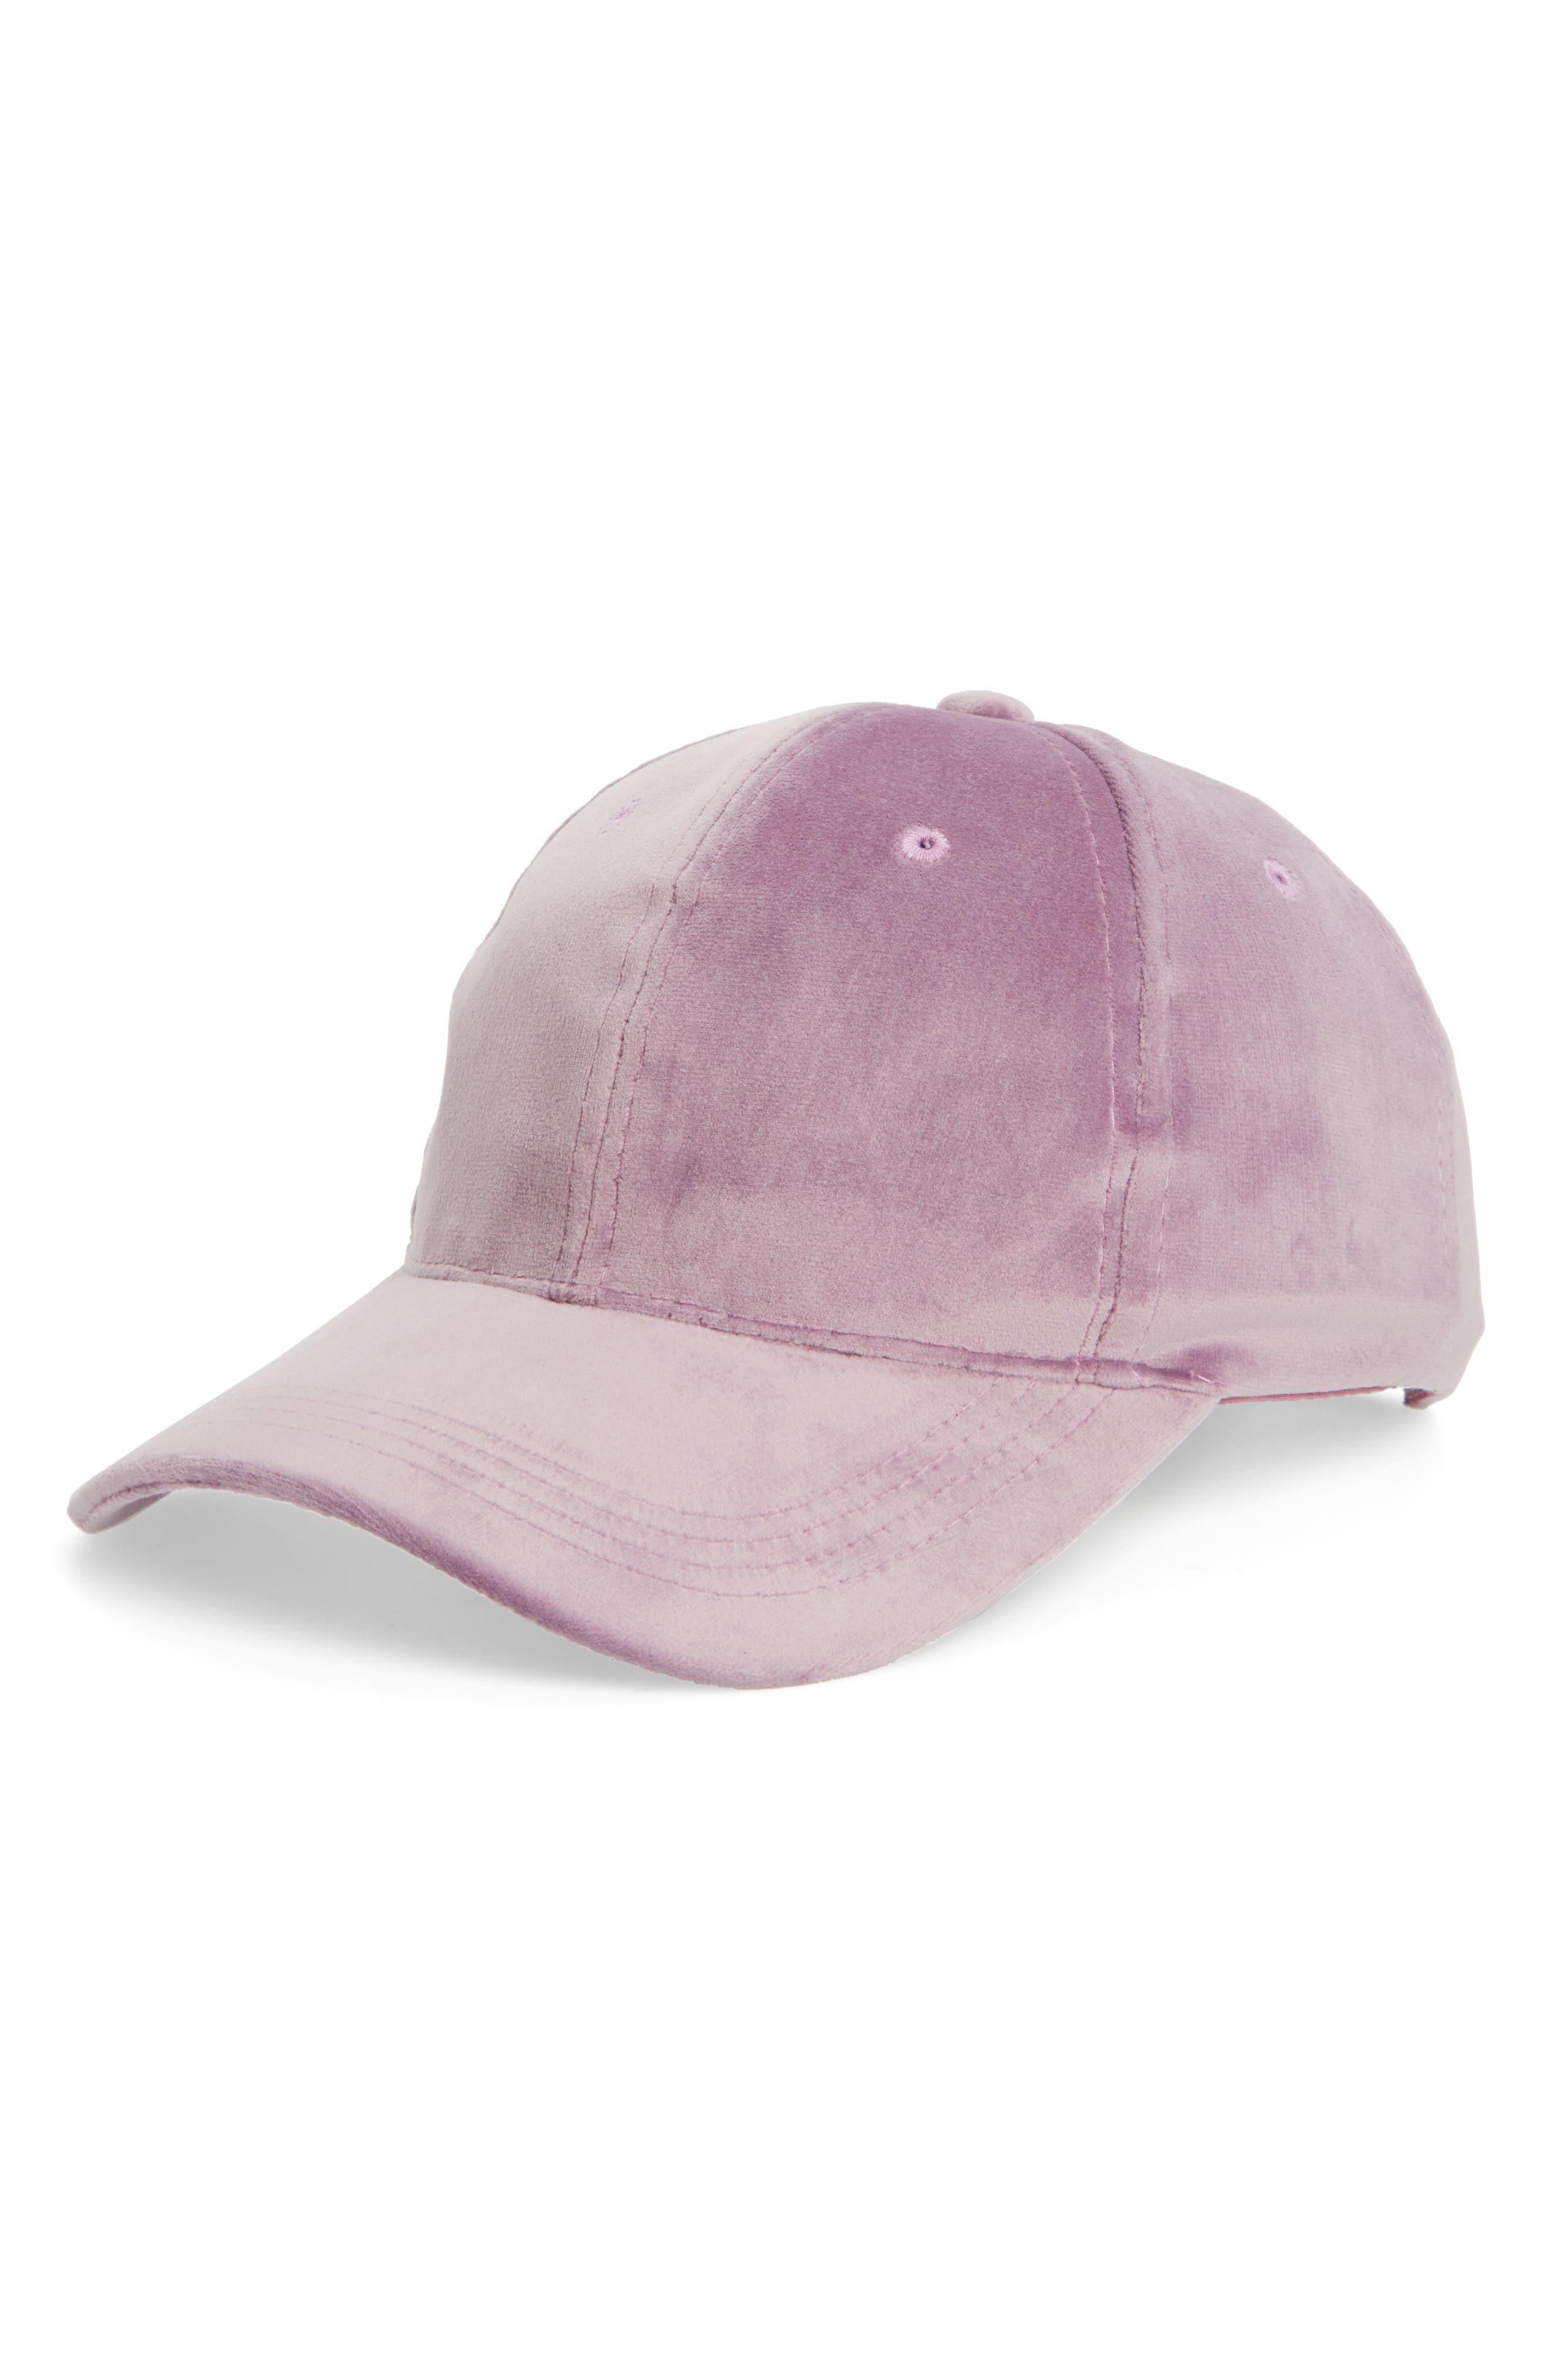 Alternate Image 1 Selected - Fantasia Velvet Ball Cap